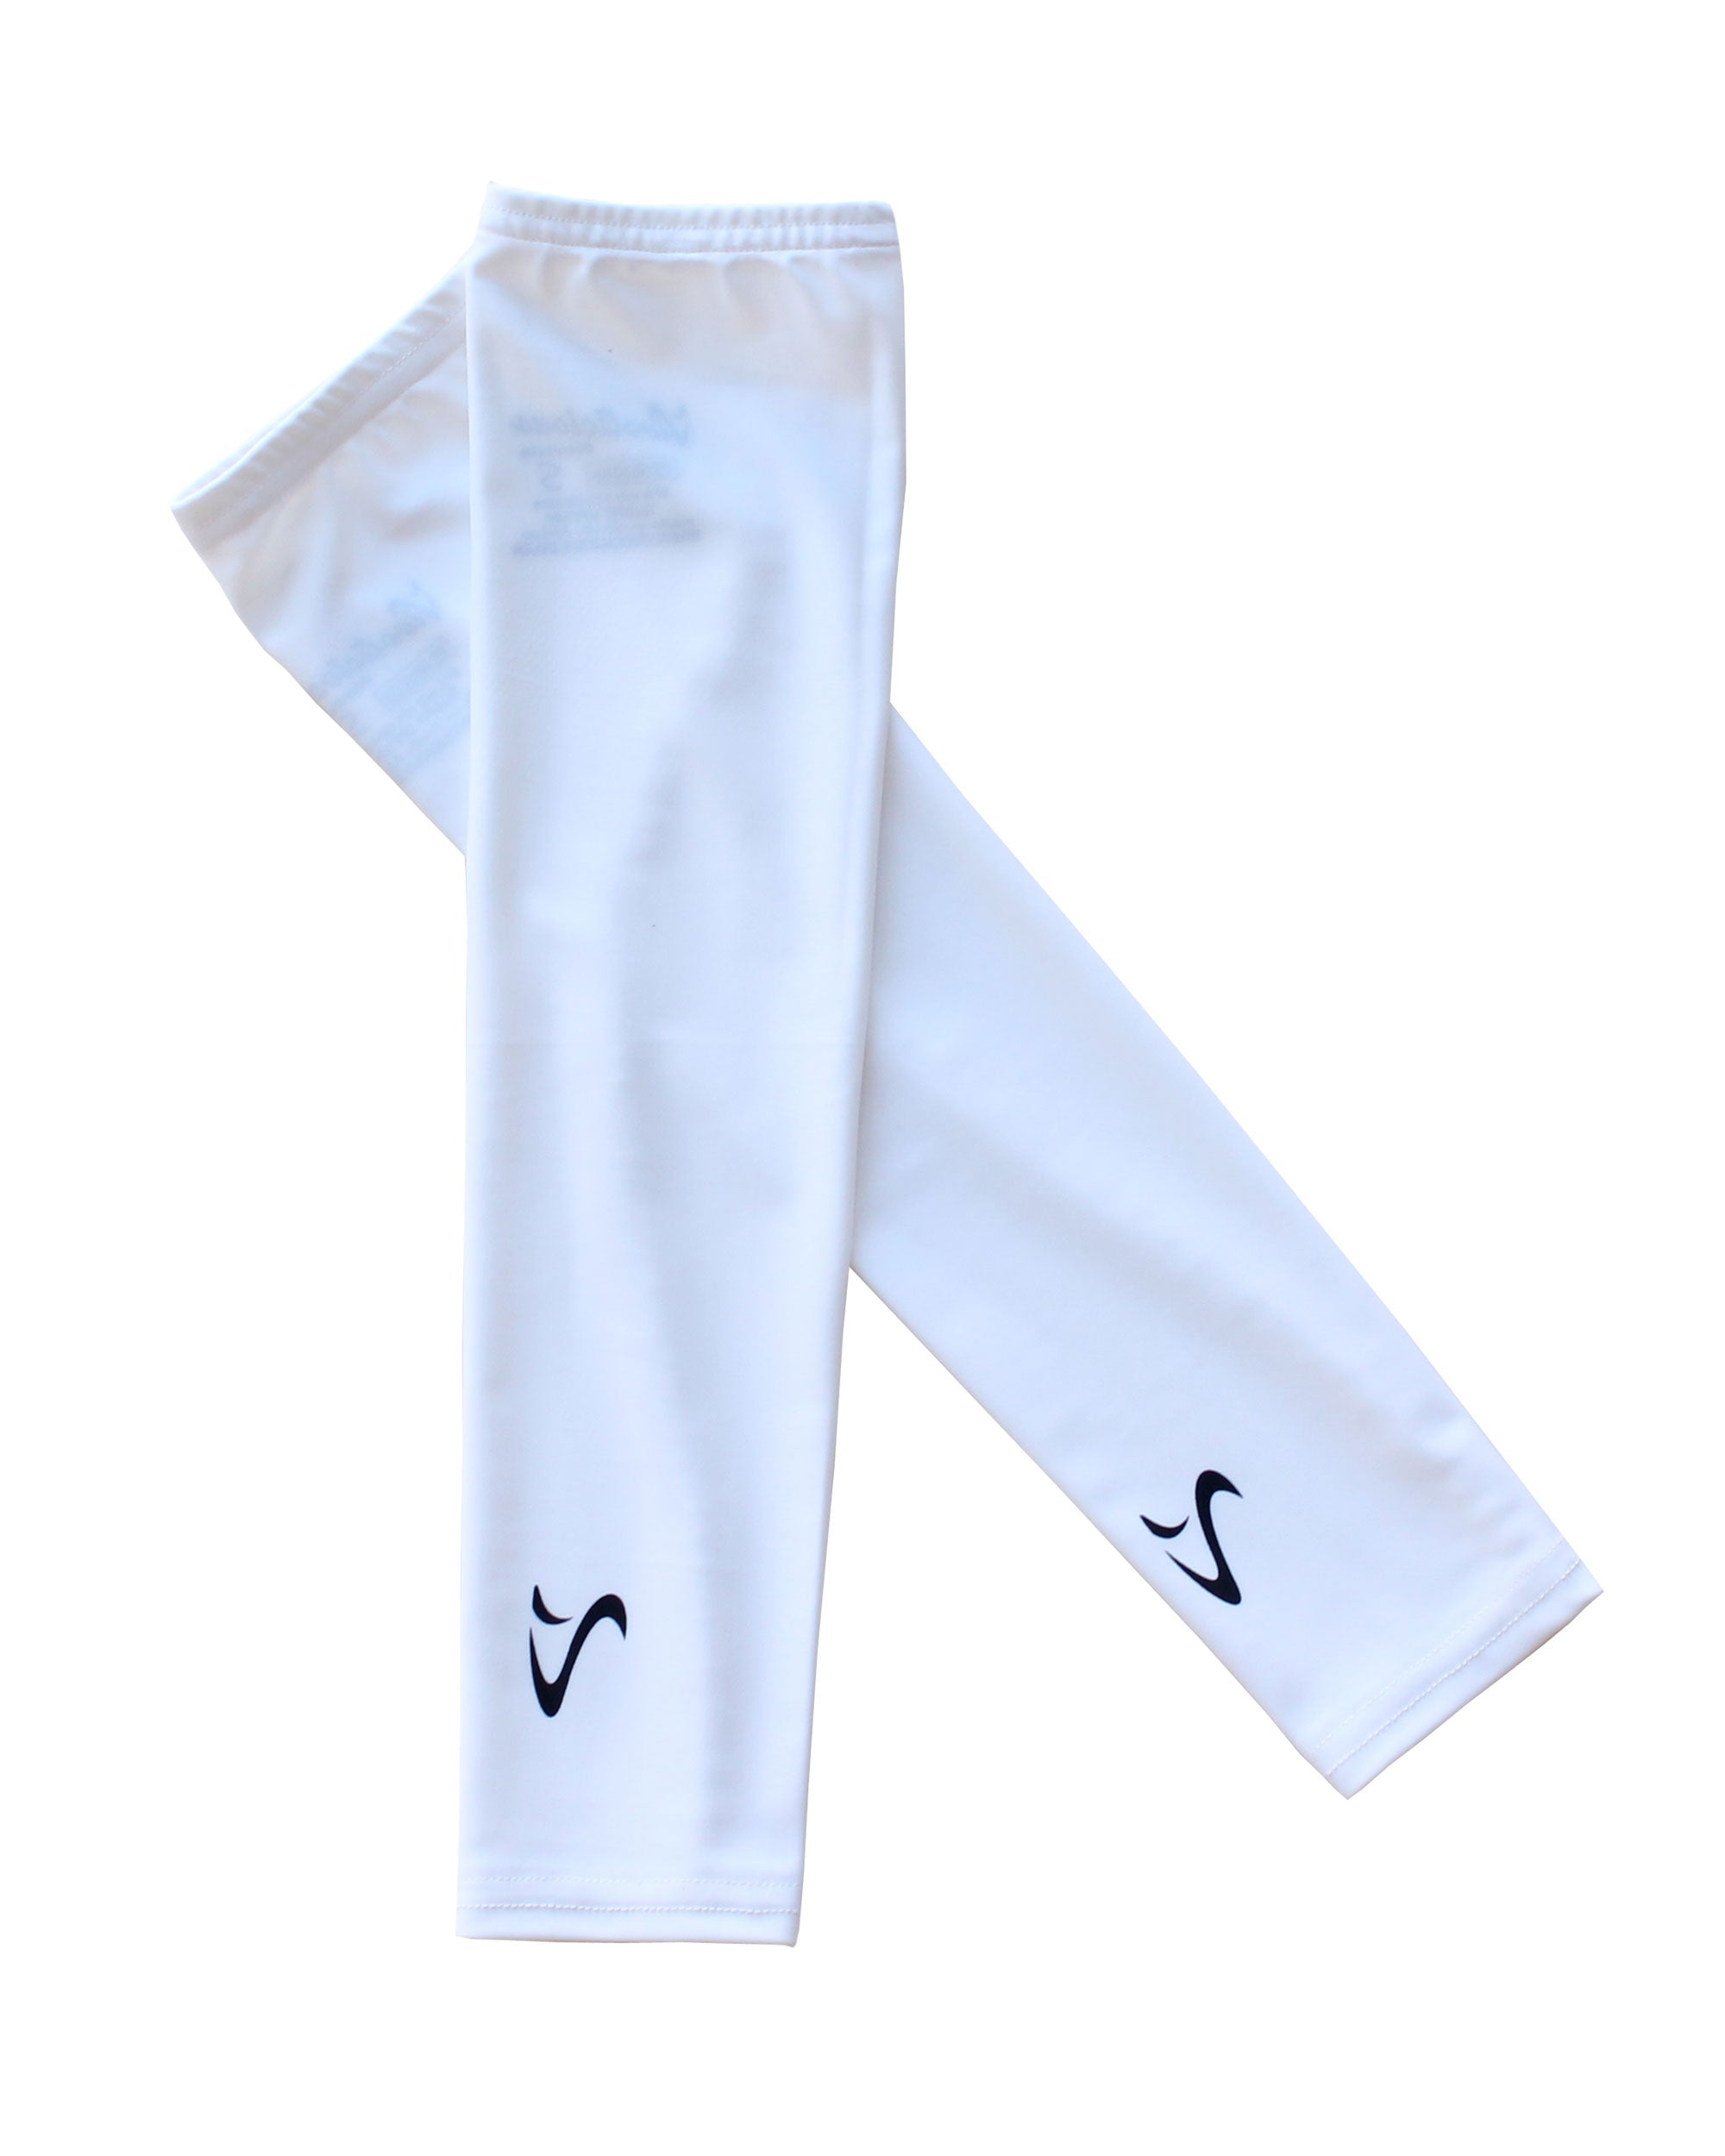 ESSENTIAL WHITE TechFIT UV Arm Sleeves VIVOLICIOUS Sun Sleeves